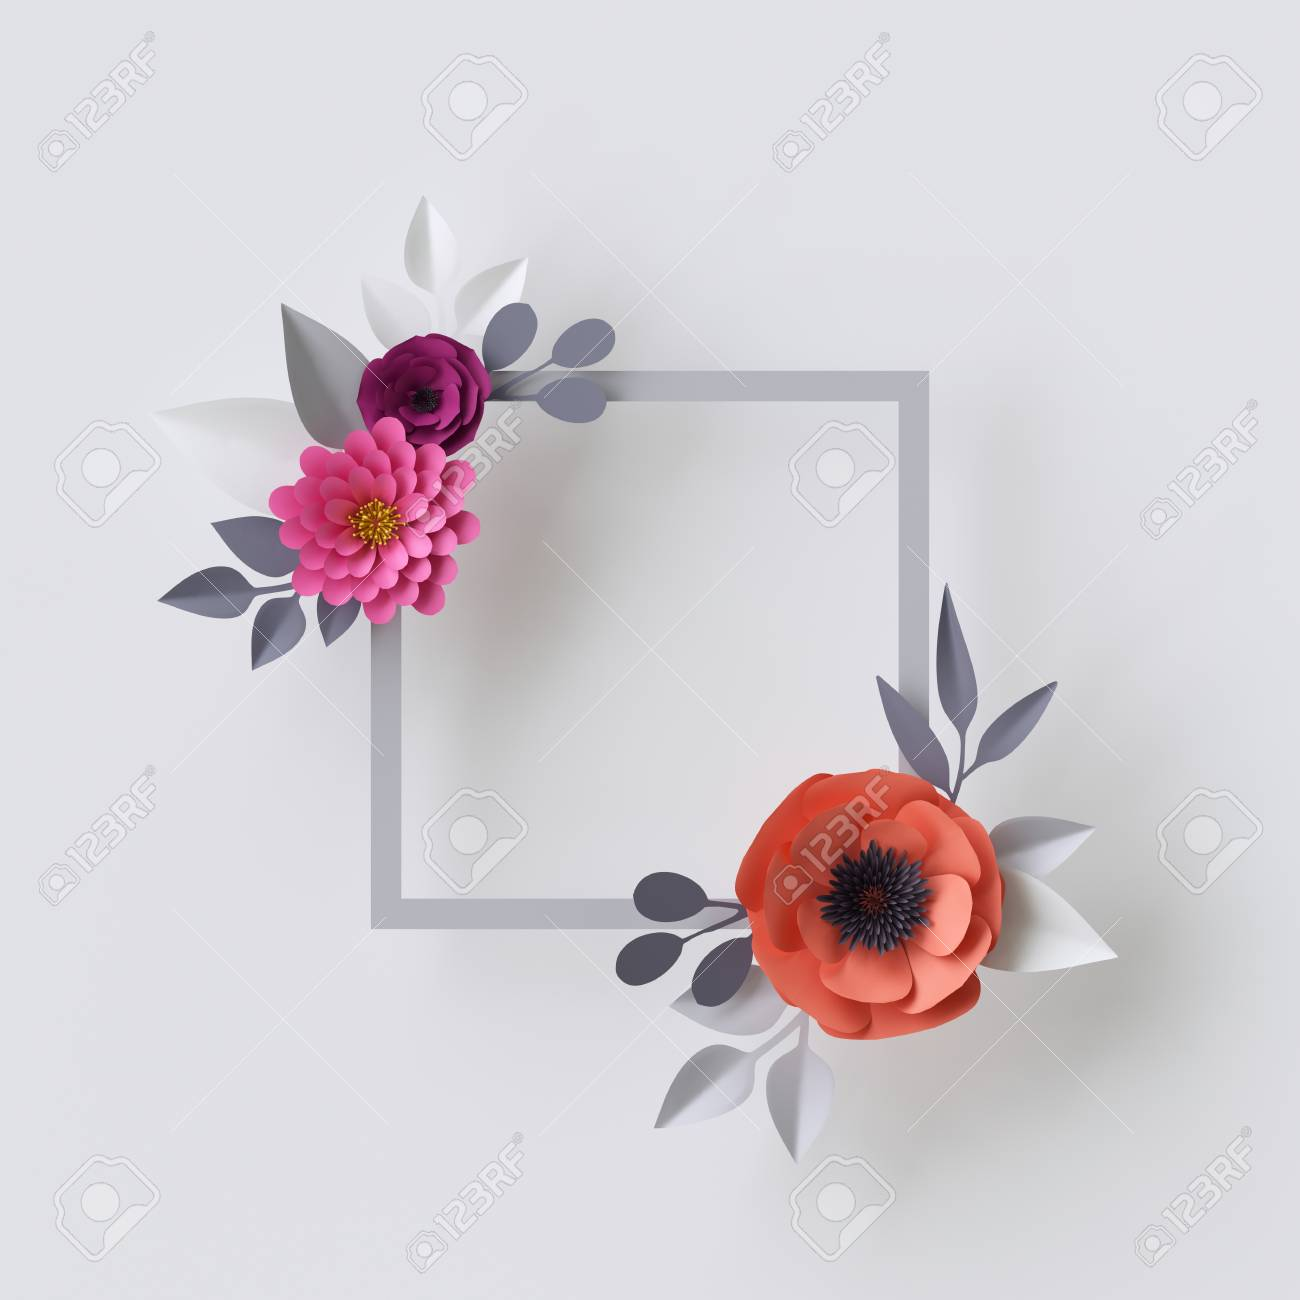 3d render abstract paper flowers floral background blank square 3d render abstract paper flowers floral background blank square frame greeting card mightylinksfo